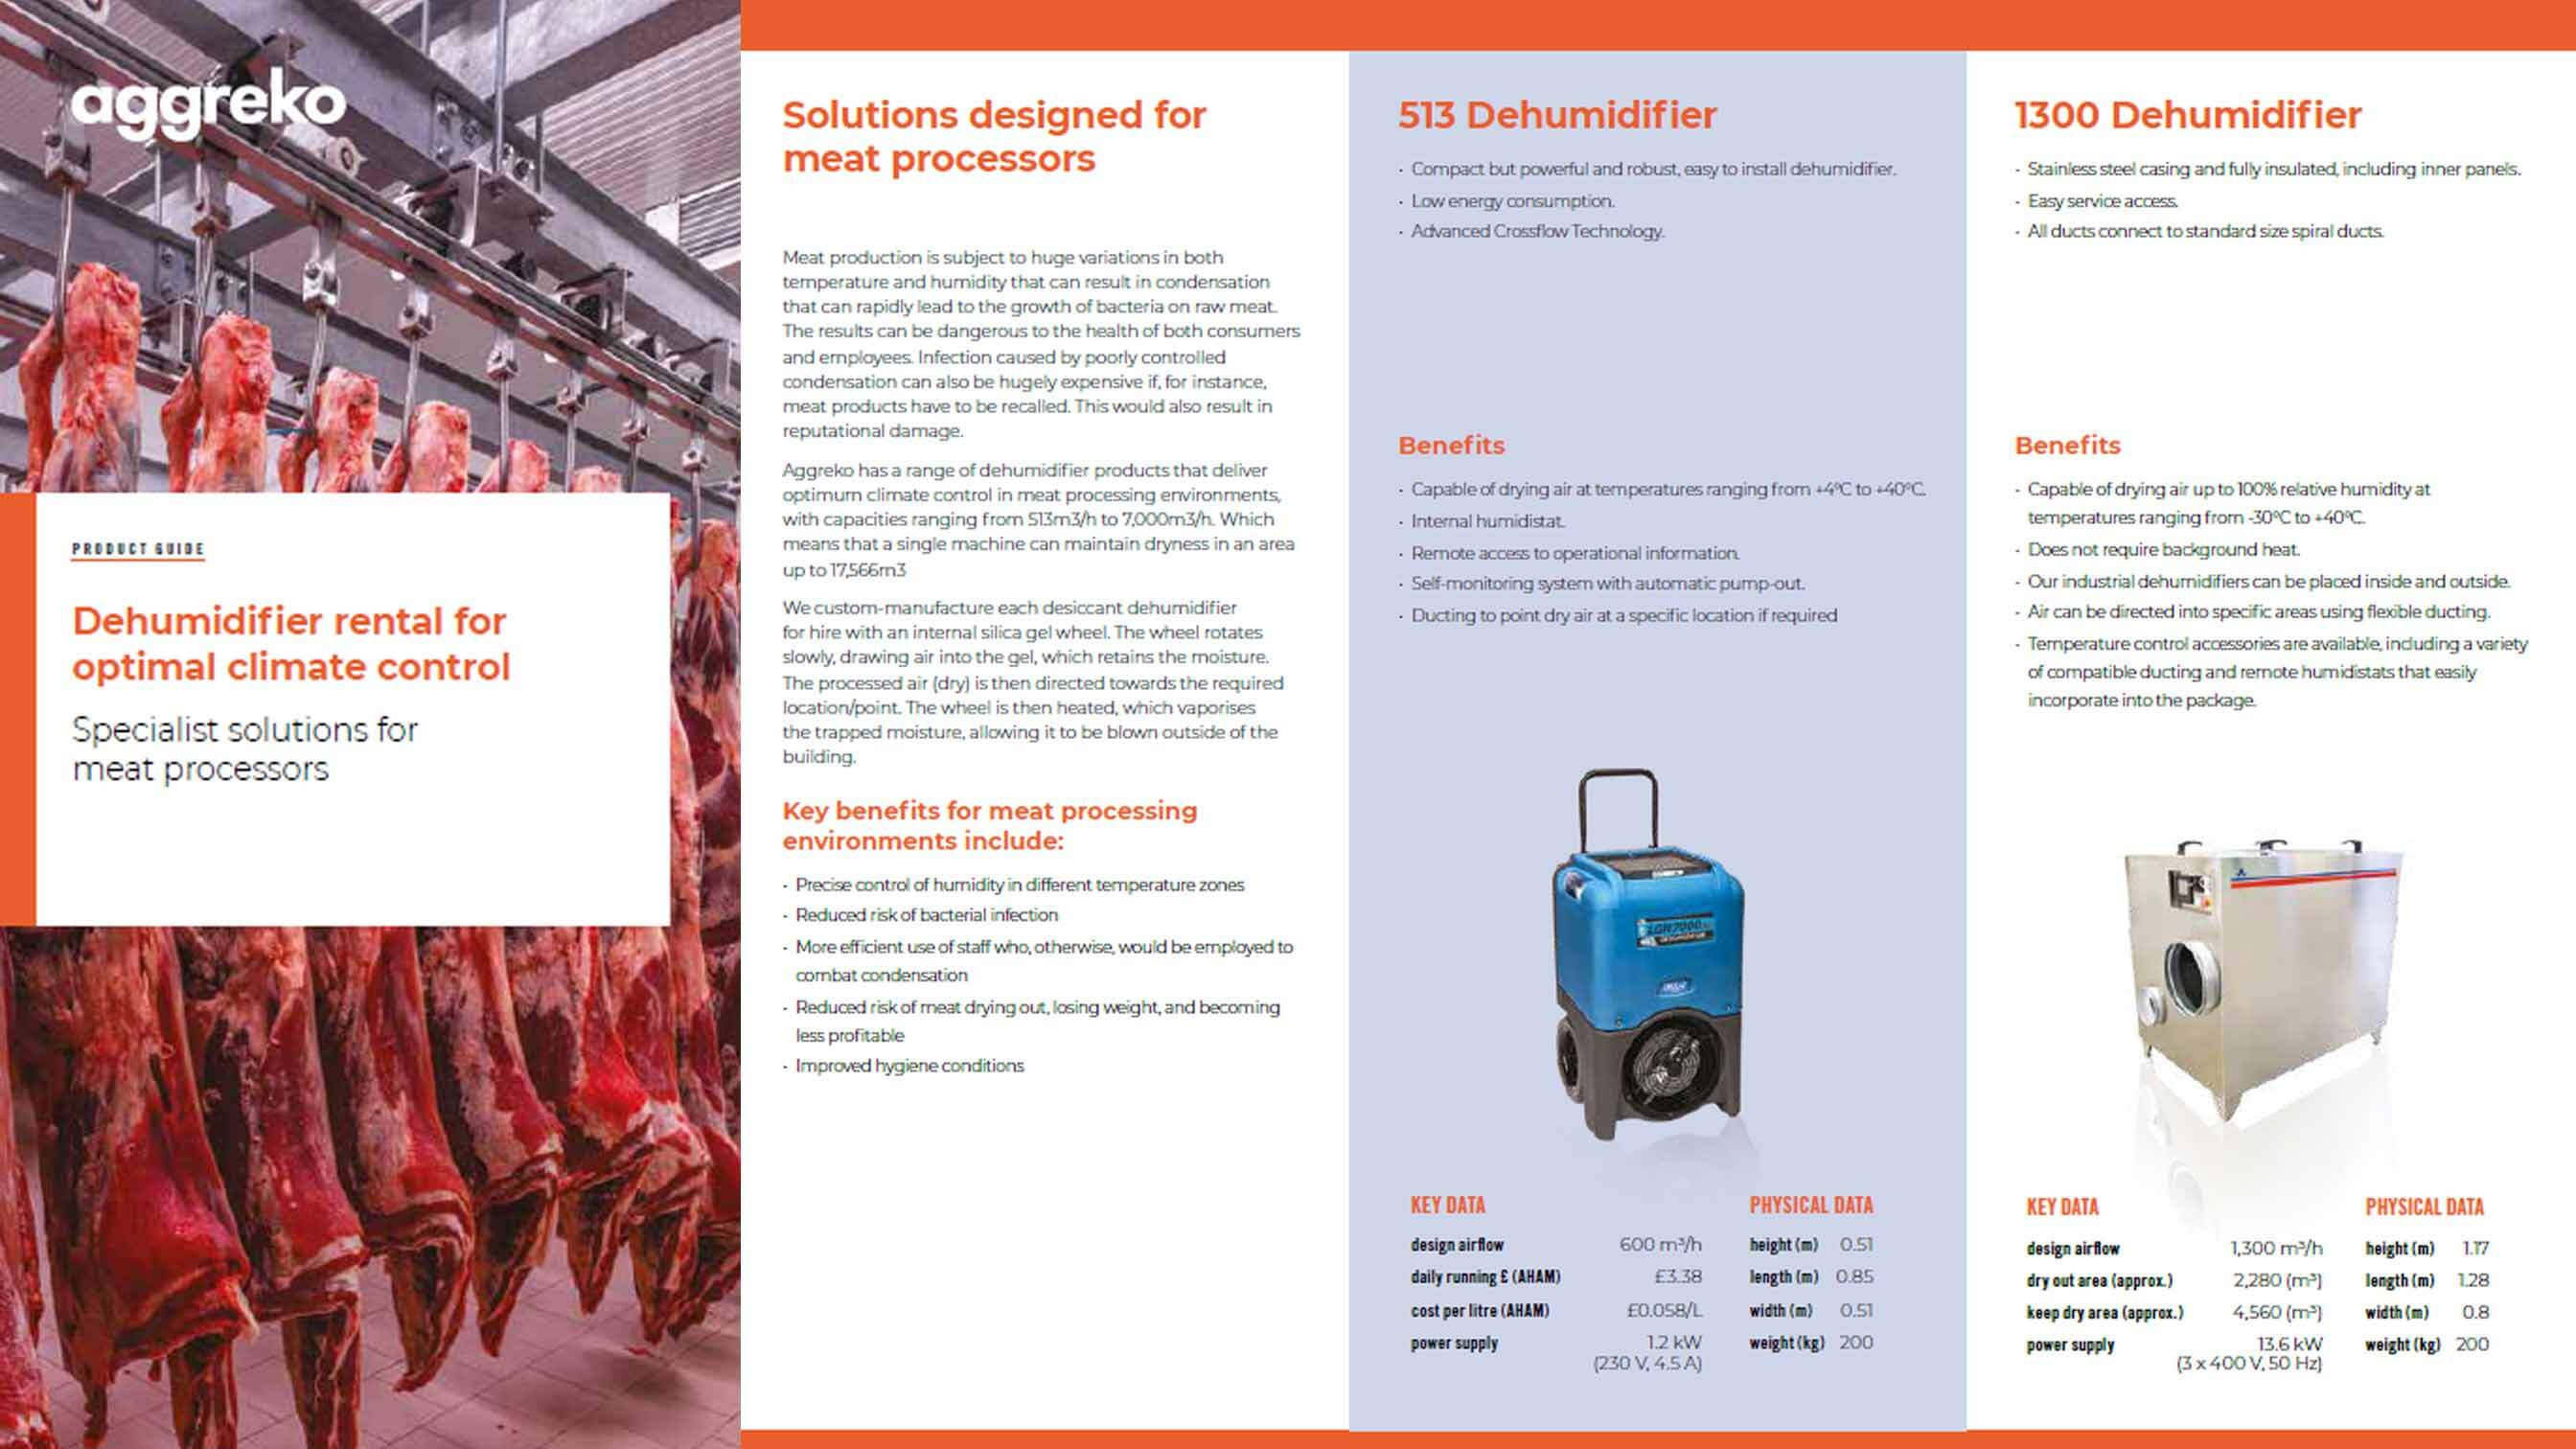 Dehumidifier product guide - meat processing